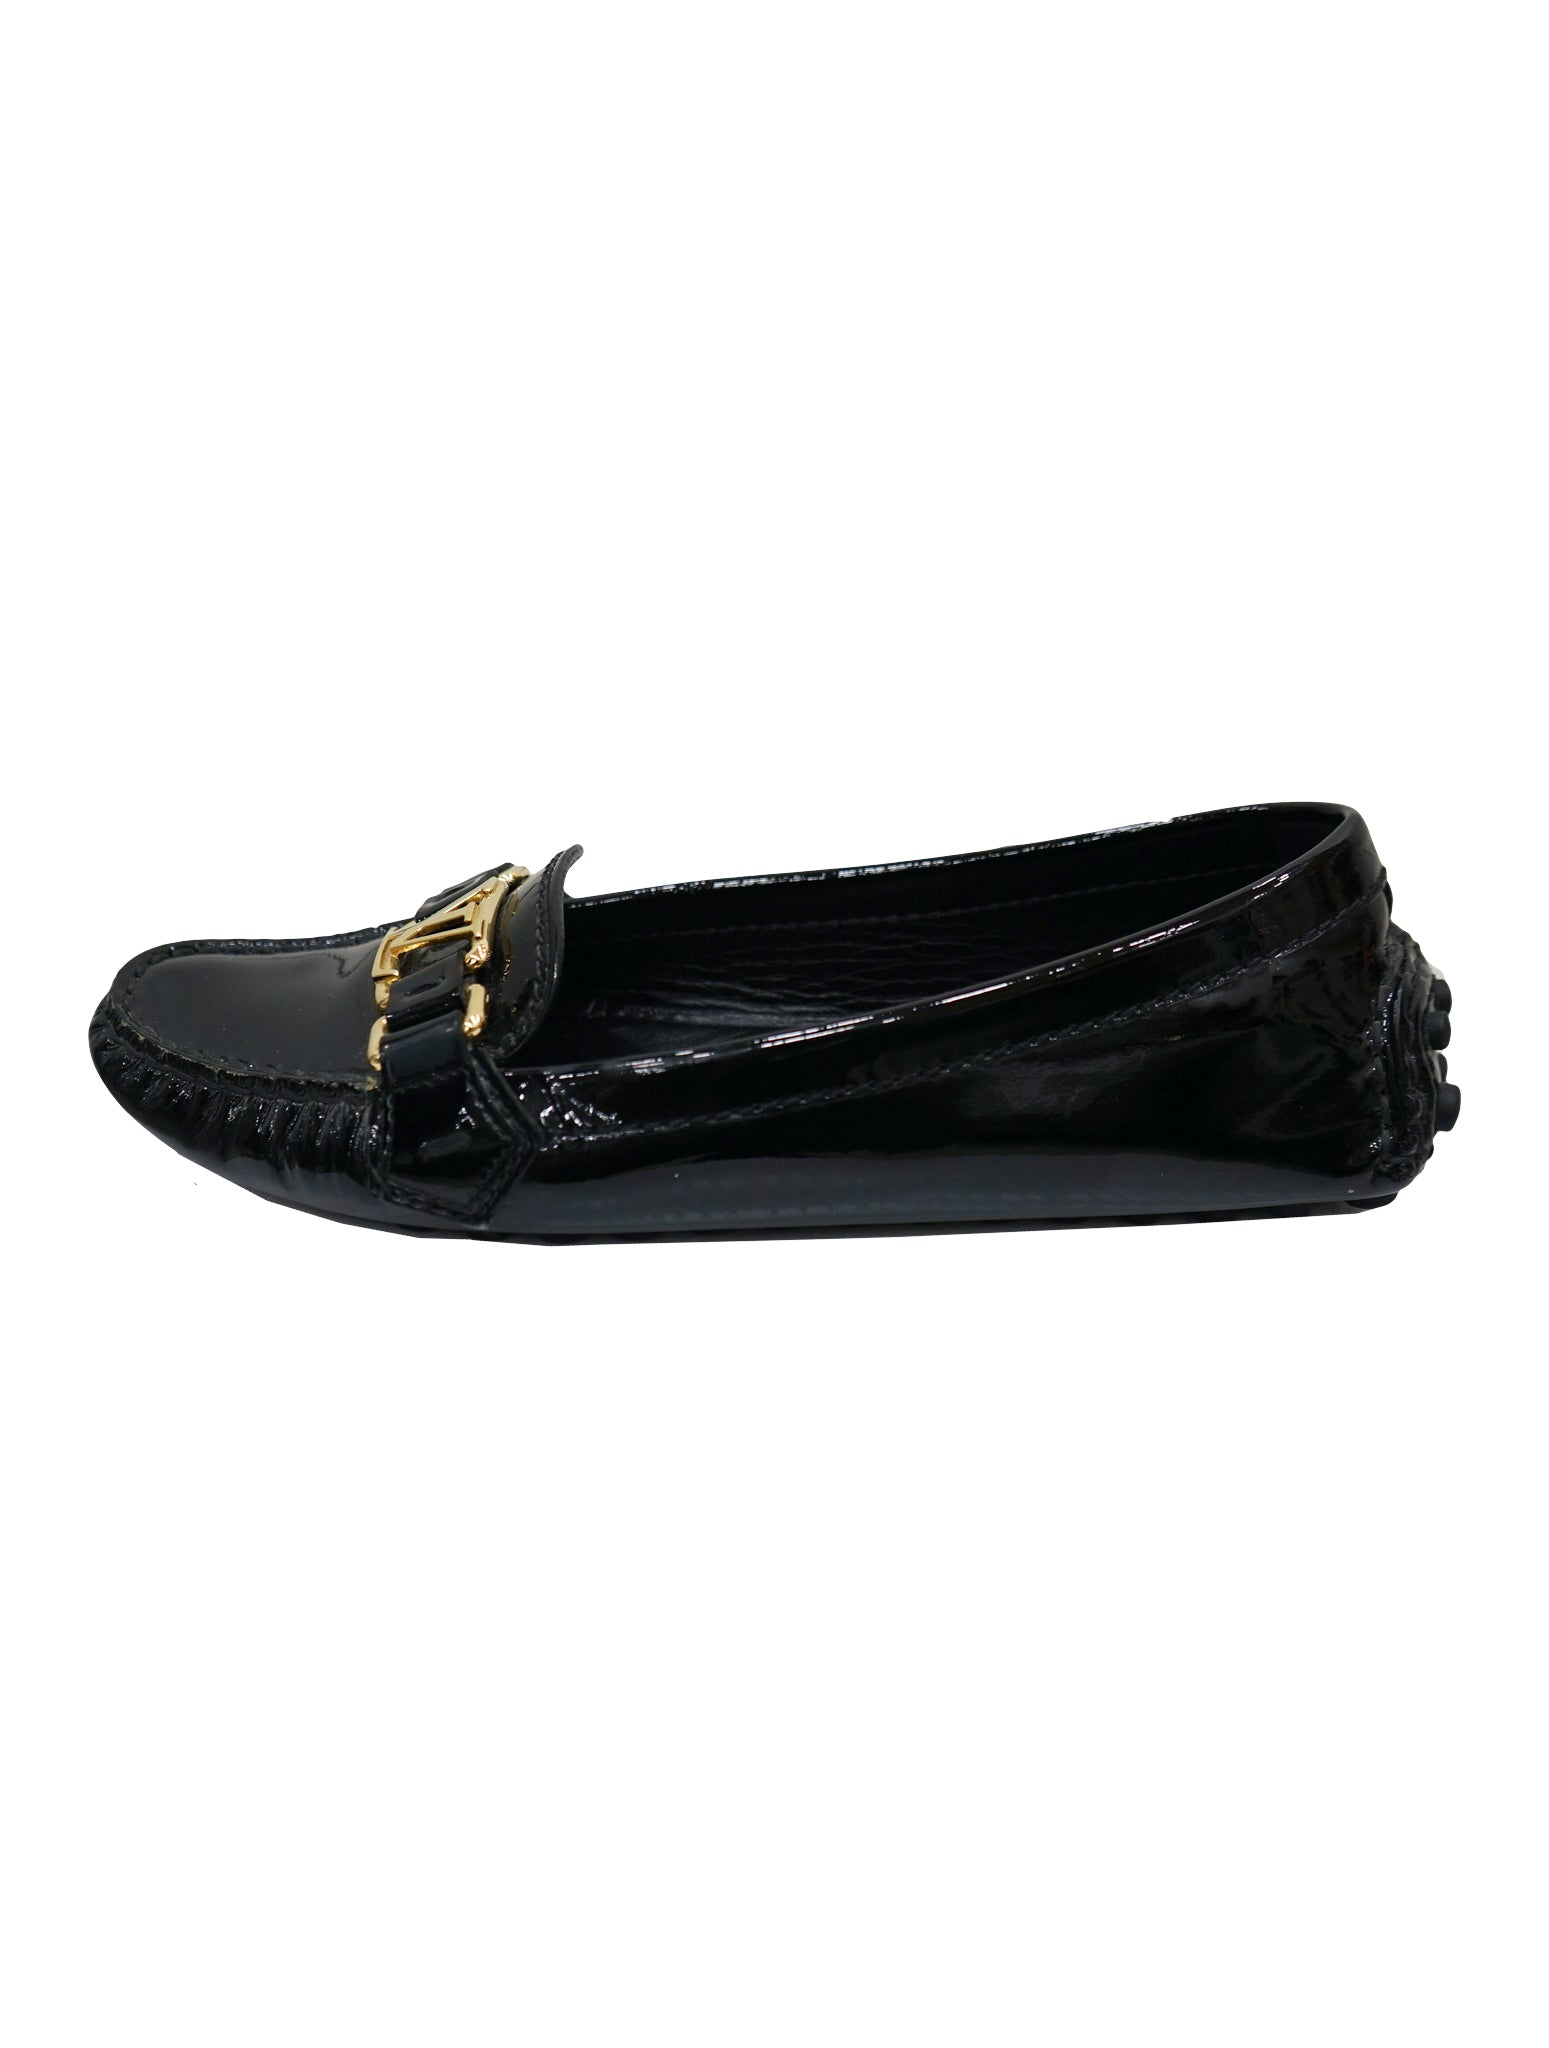 BLACK PATENT LEATHER OXFORD LOAFERS